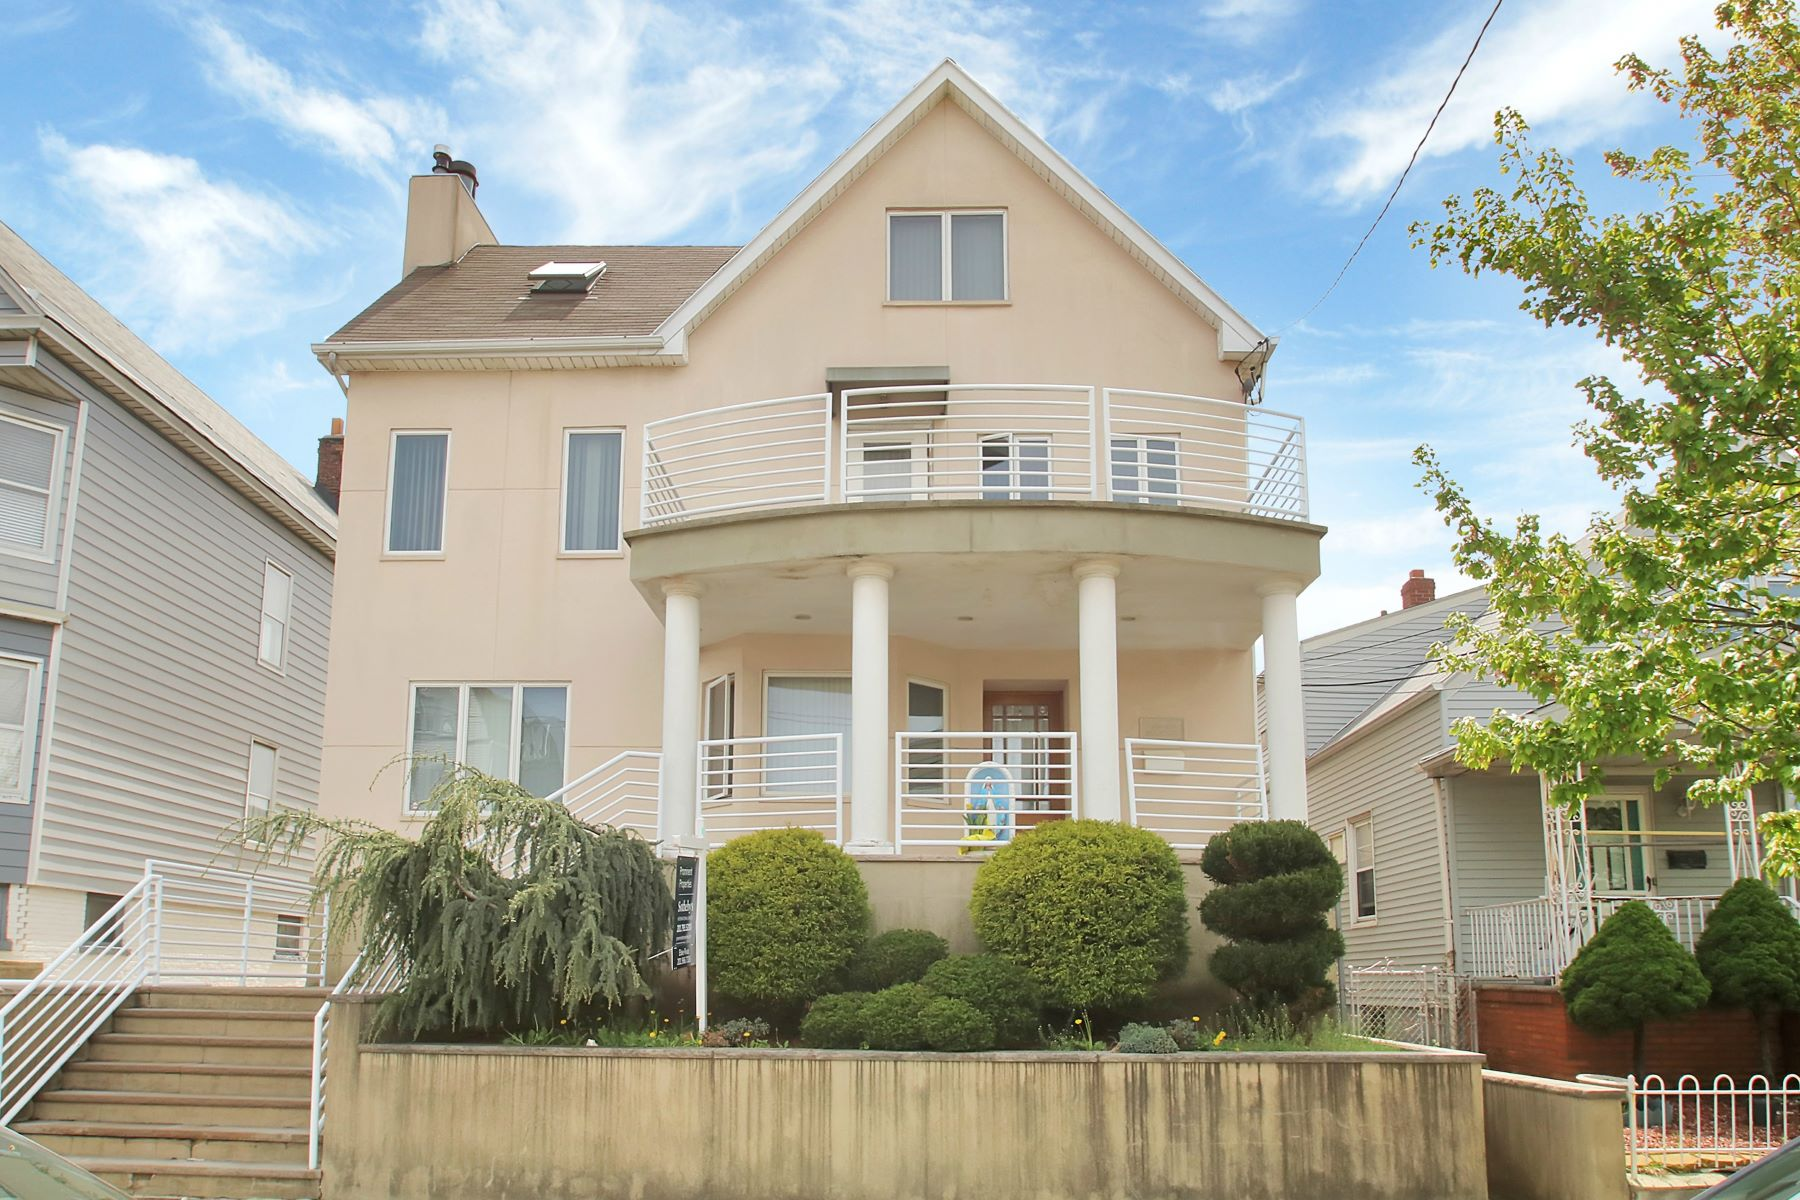 Multi-Family Home for Sale at Exceptional one of a kind colonial Home 140 West 25th Street Bayonne, New Jersey 07002 United States